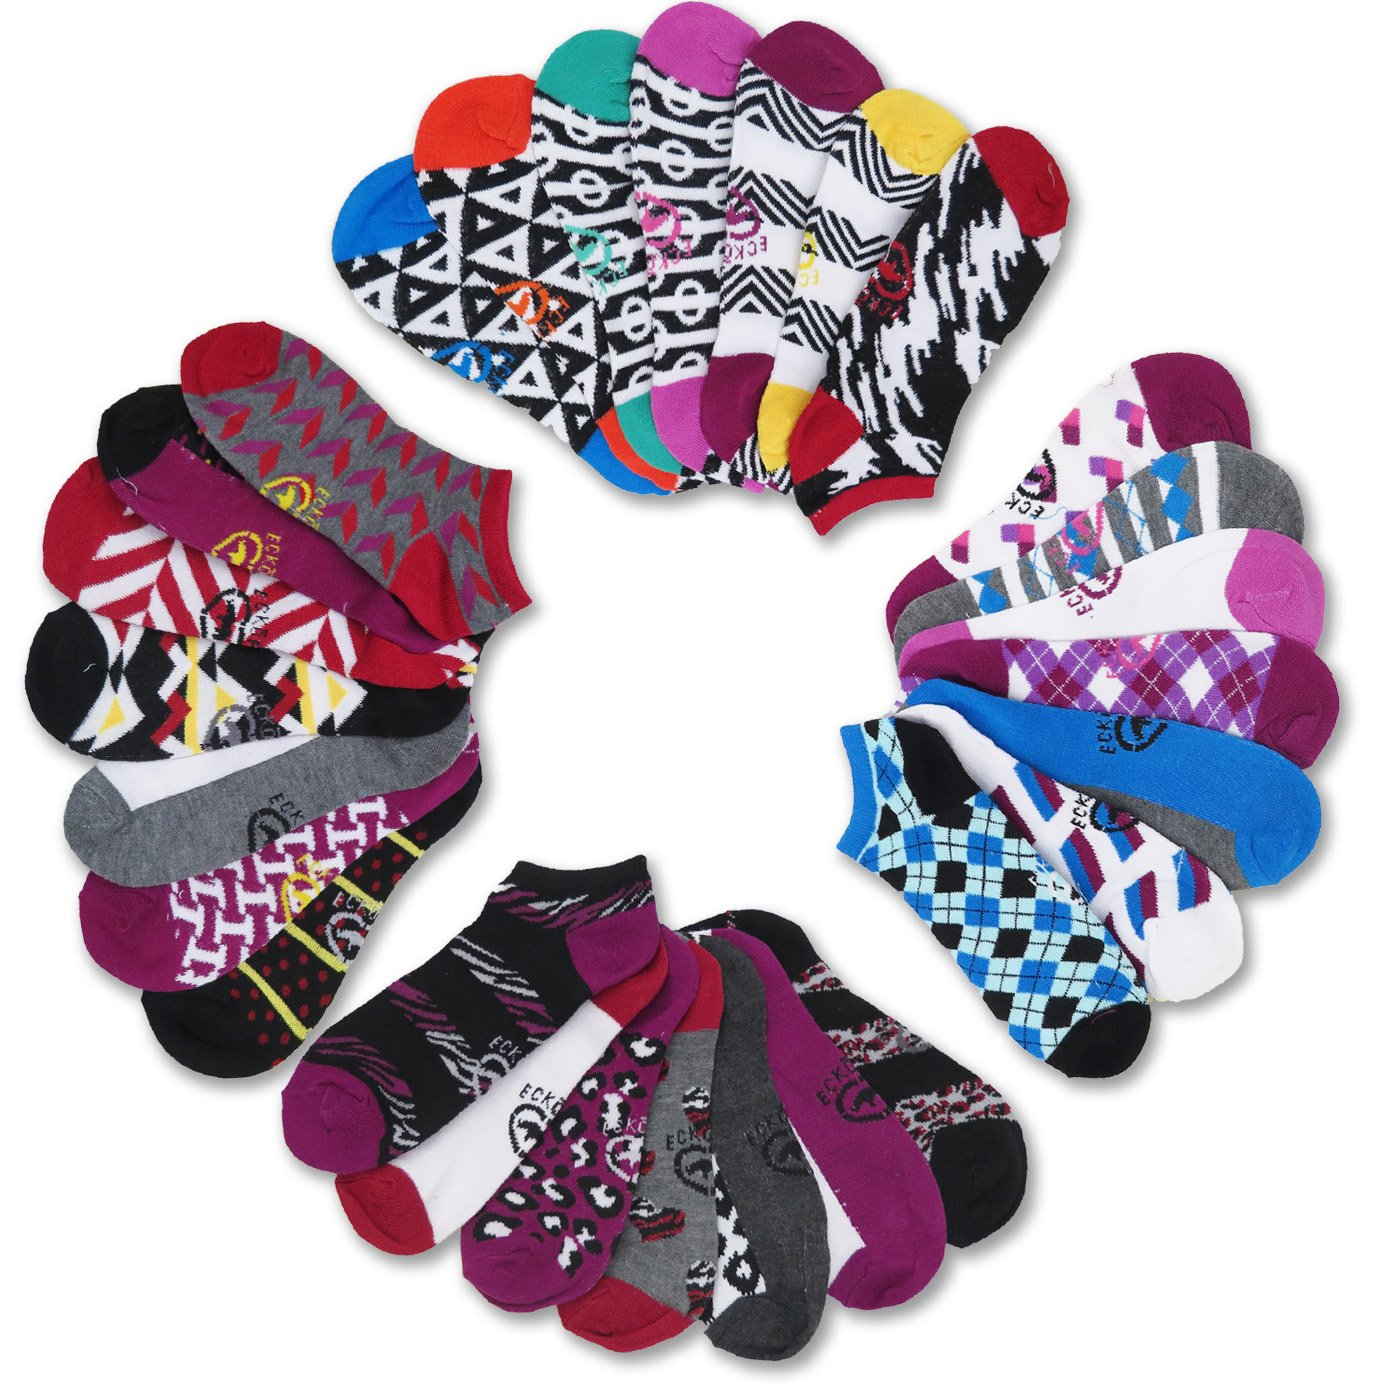 Ecko Red Women's Fun Print Low Cut Ankle Socks (28 Pack) (Style #2)